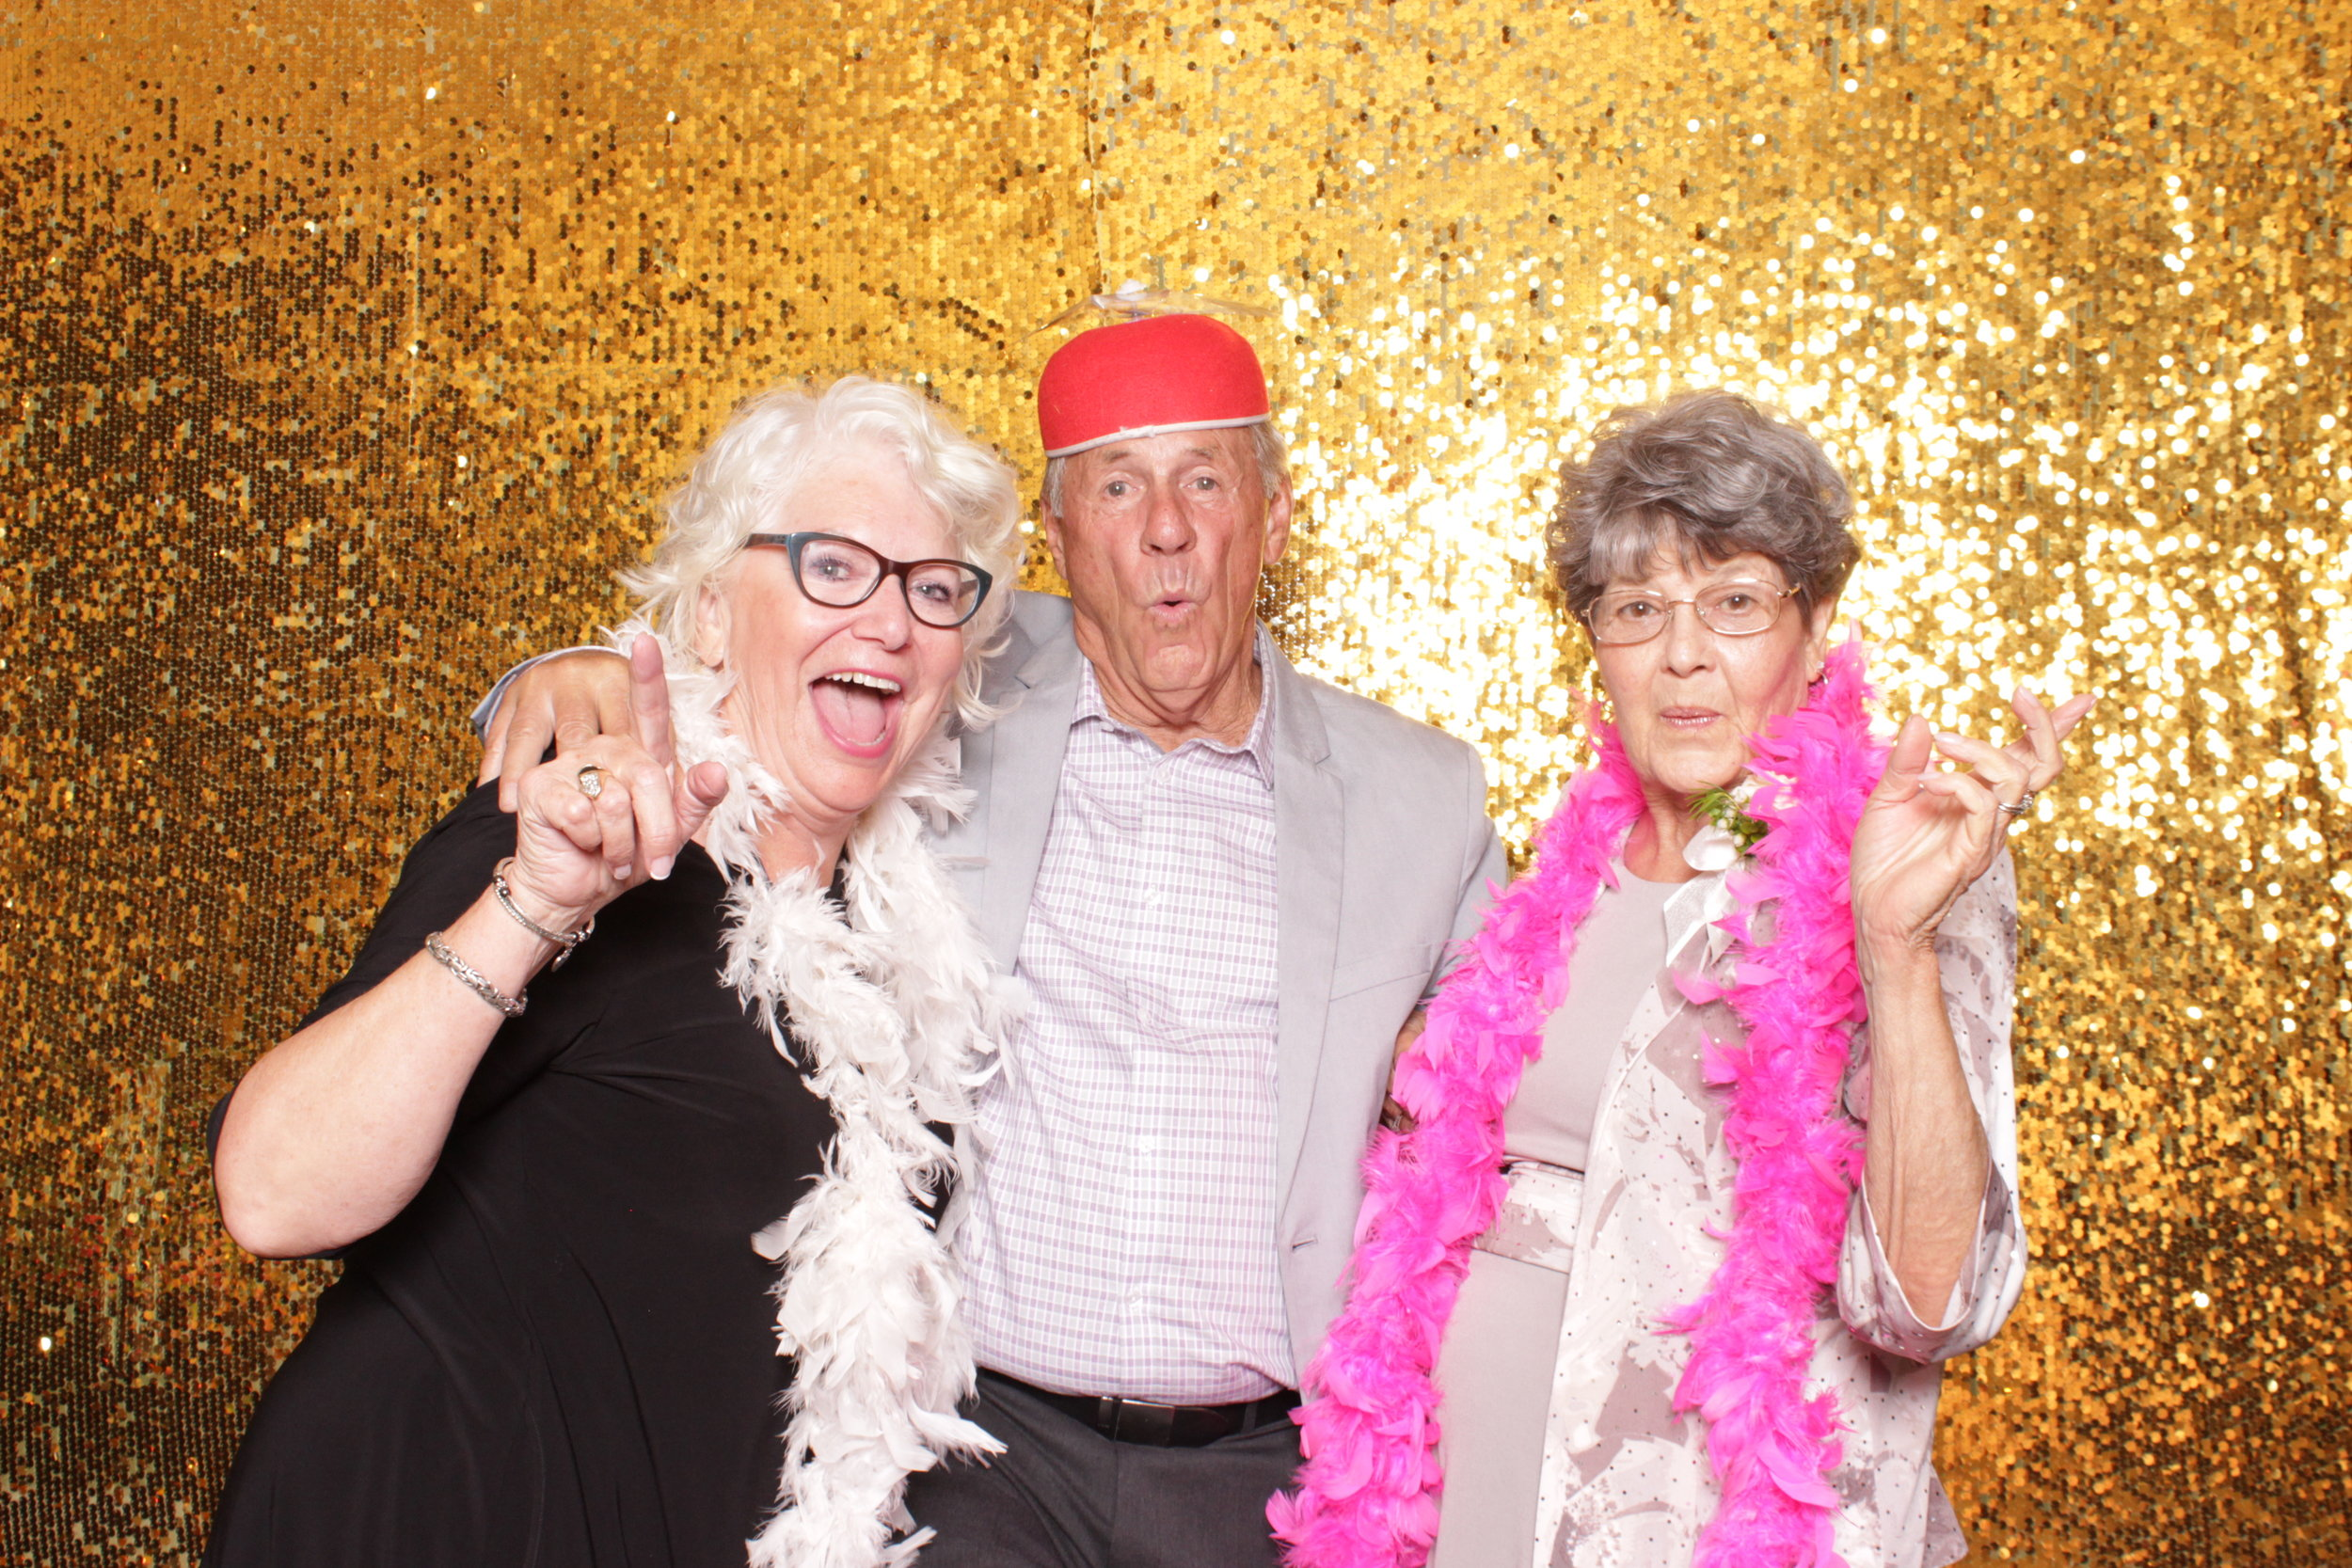 wedding-butte-creek-country-club-photo-booth-rental.JPG